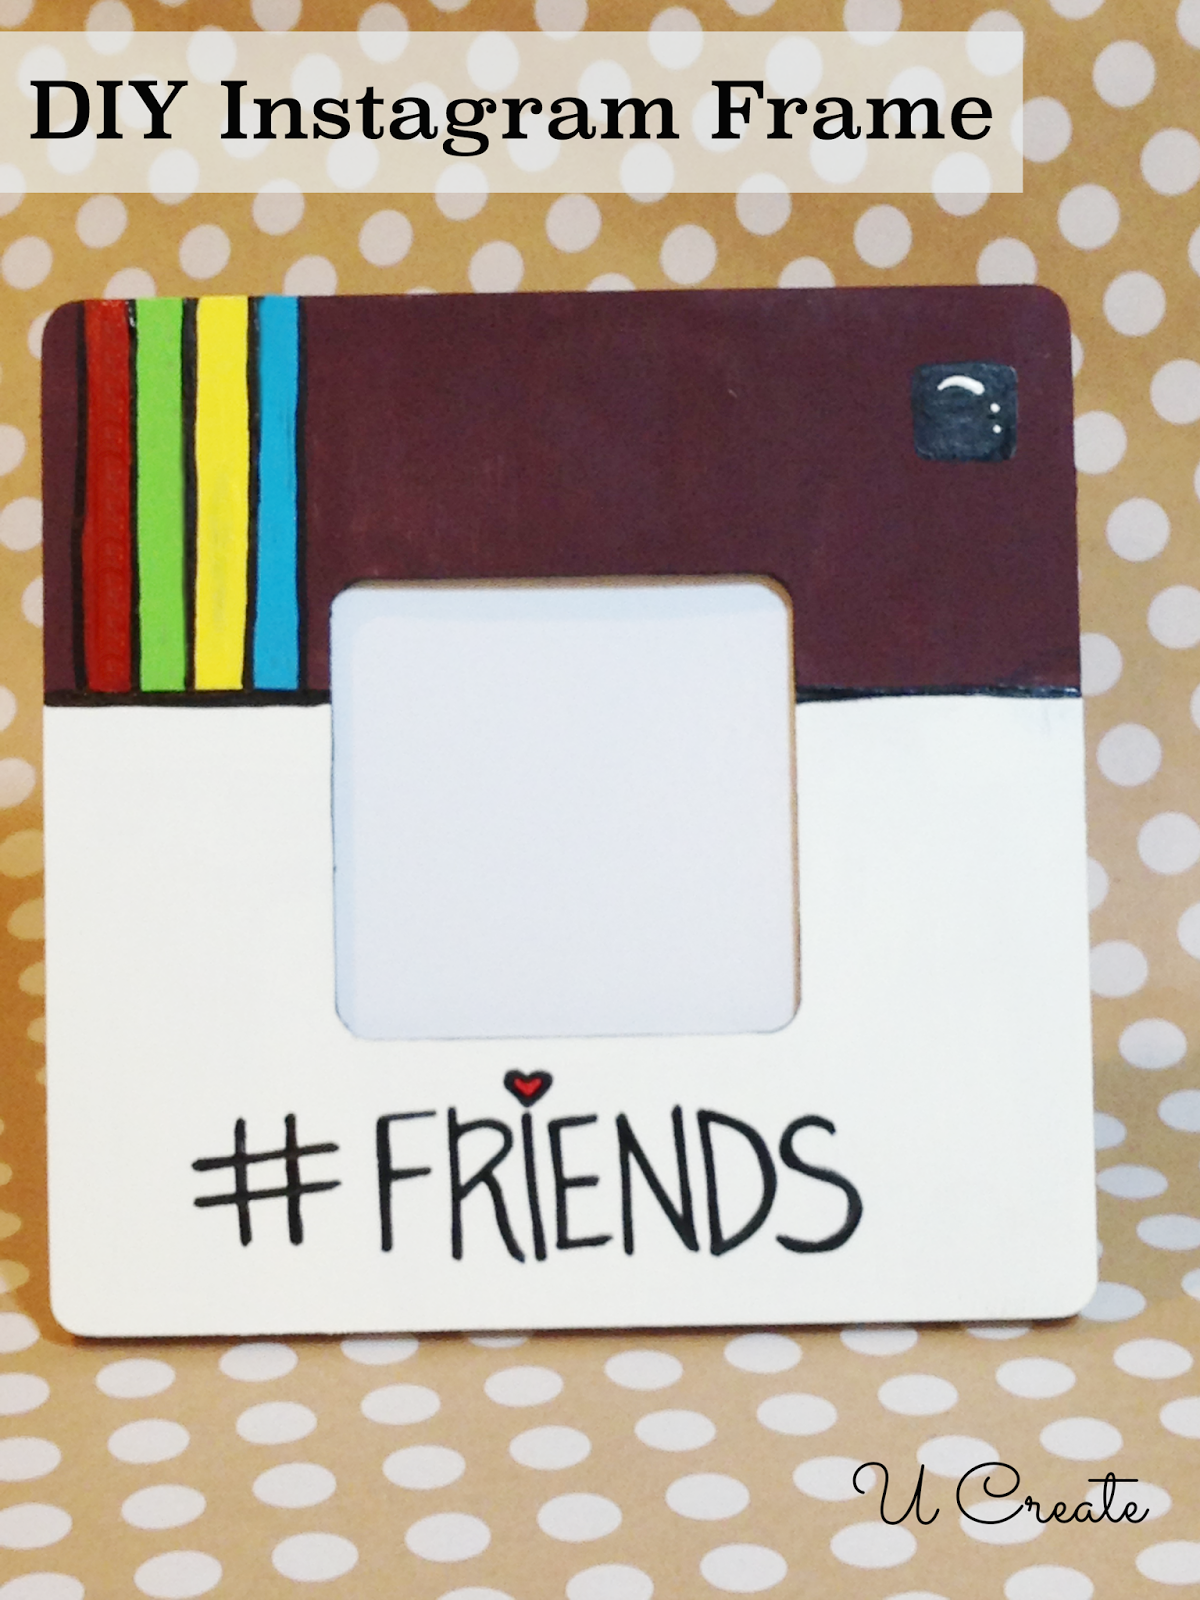 DIY Instagram Frame great t for teens too cute coaster idea